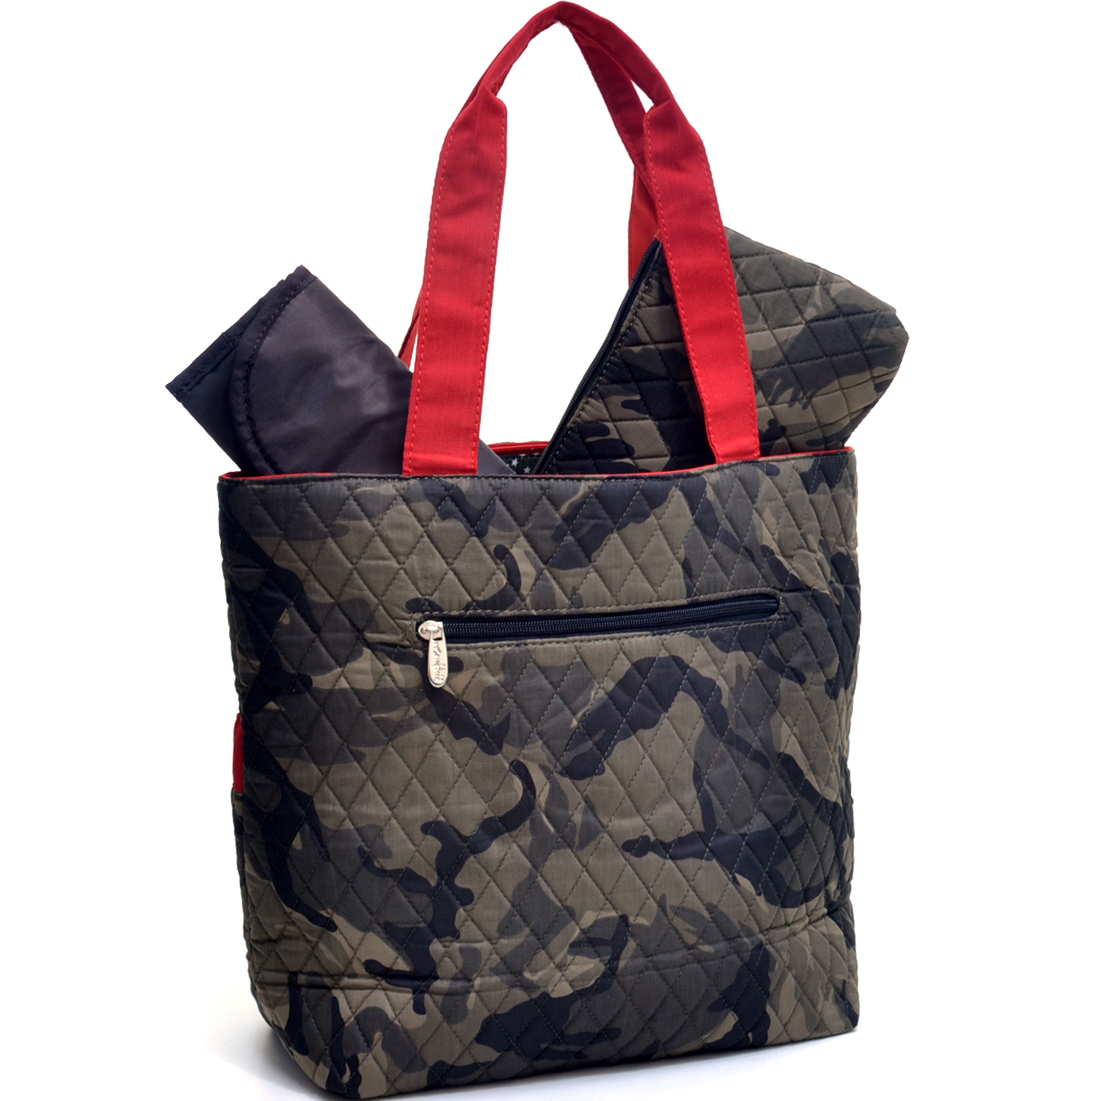 Rosen Blue® Camouflage Print Diaper Bag 3-Piece Set